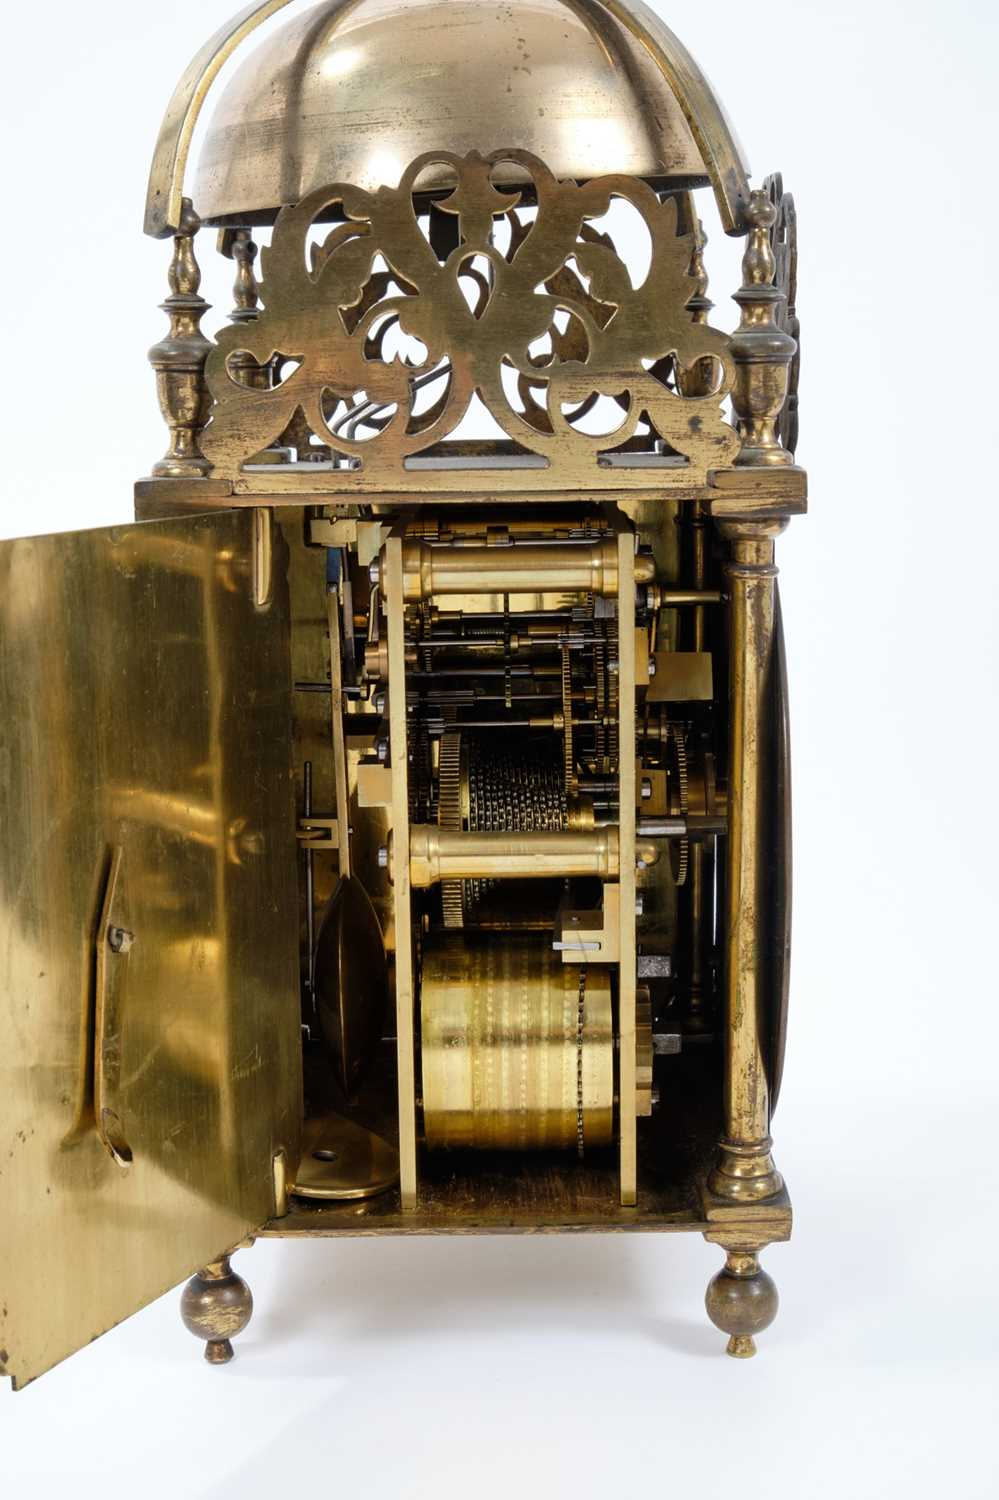 Good quality brass lantern clock Provenance: Removed from Argyll House, Kings Road, London - Image 3 of 3